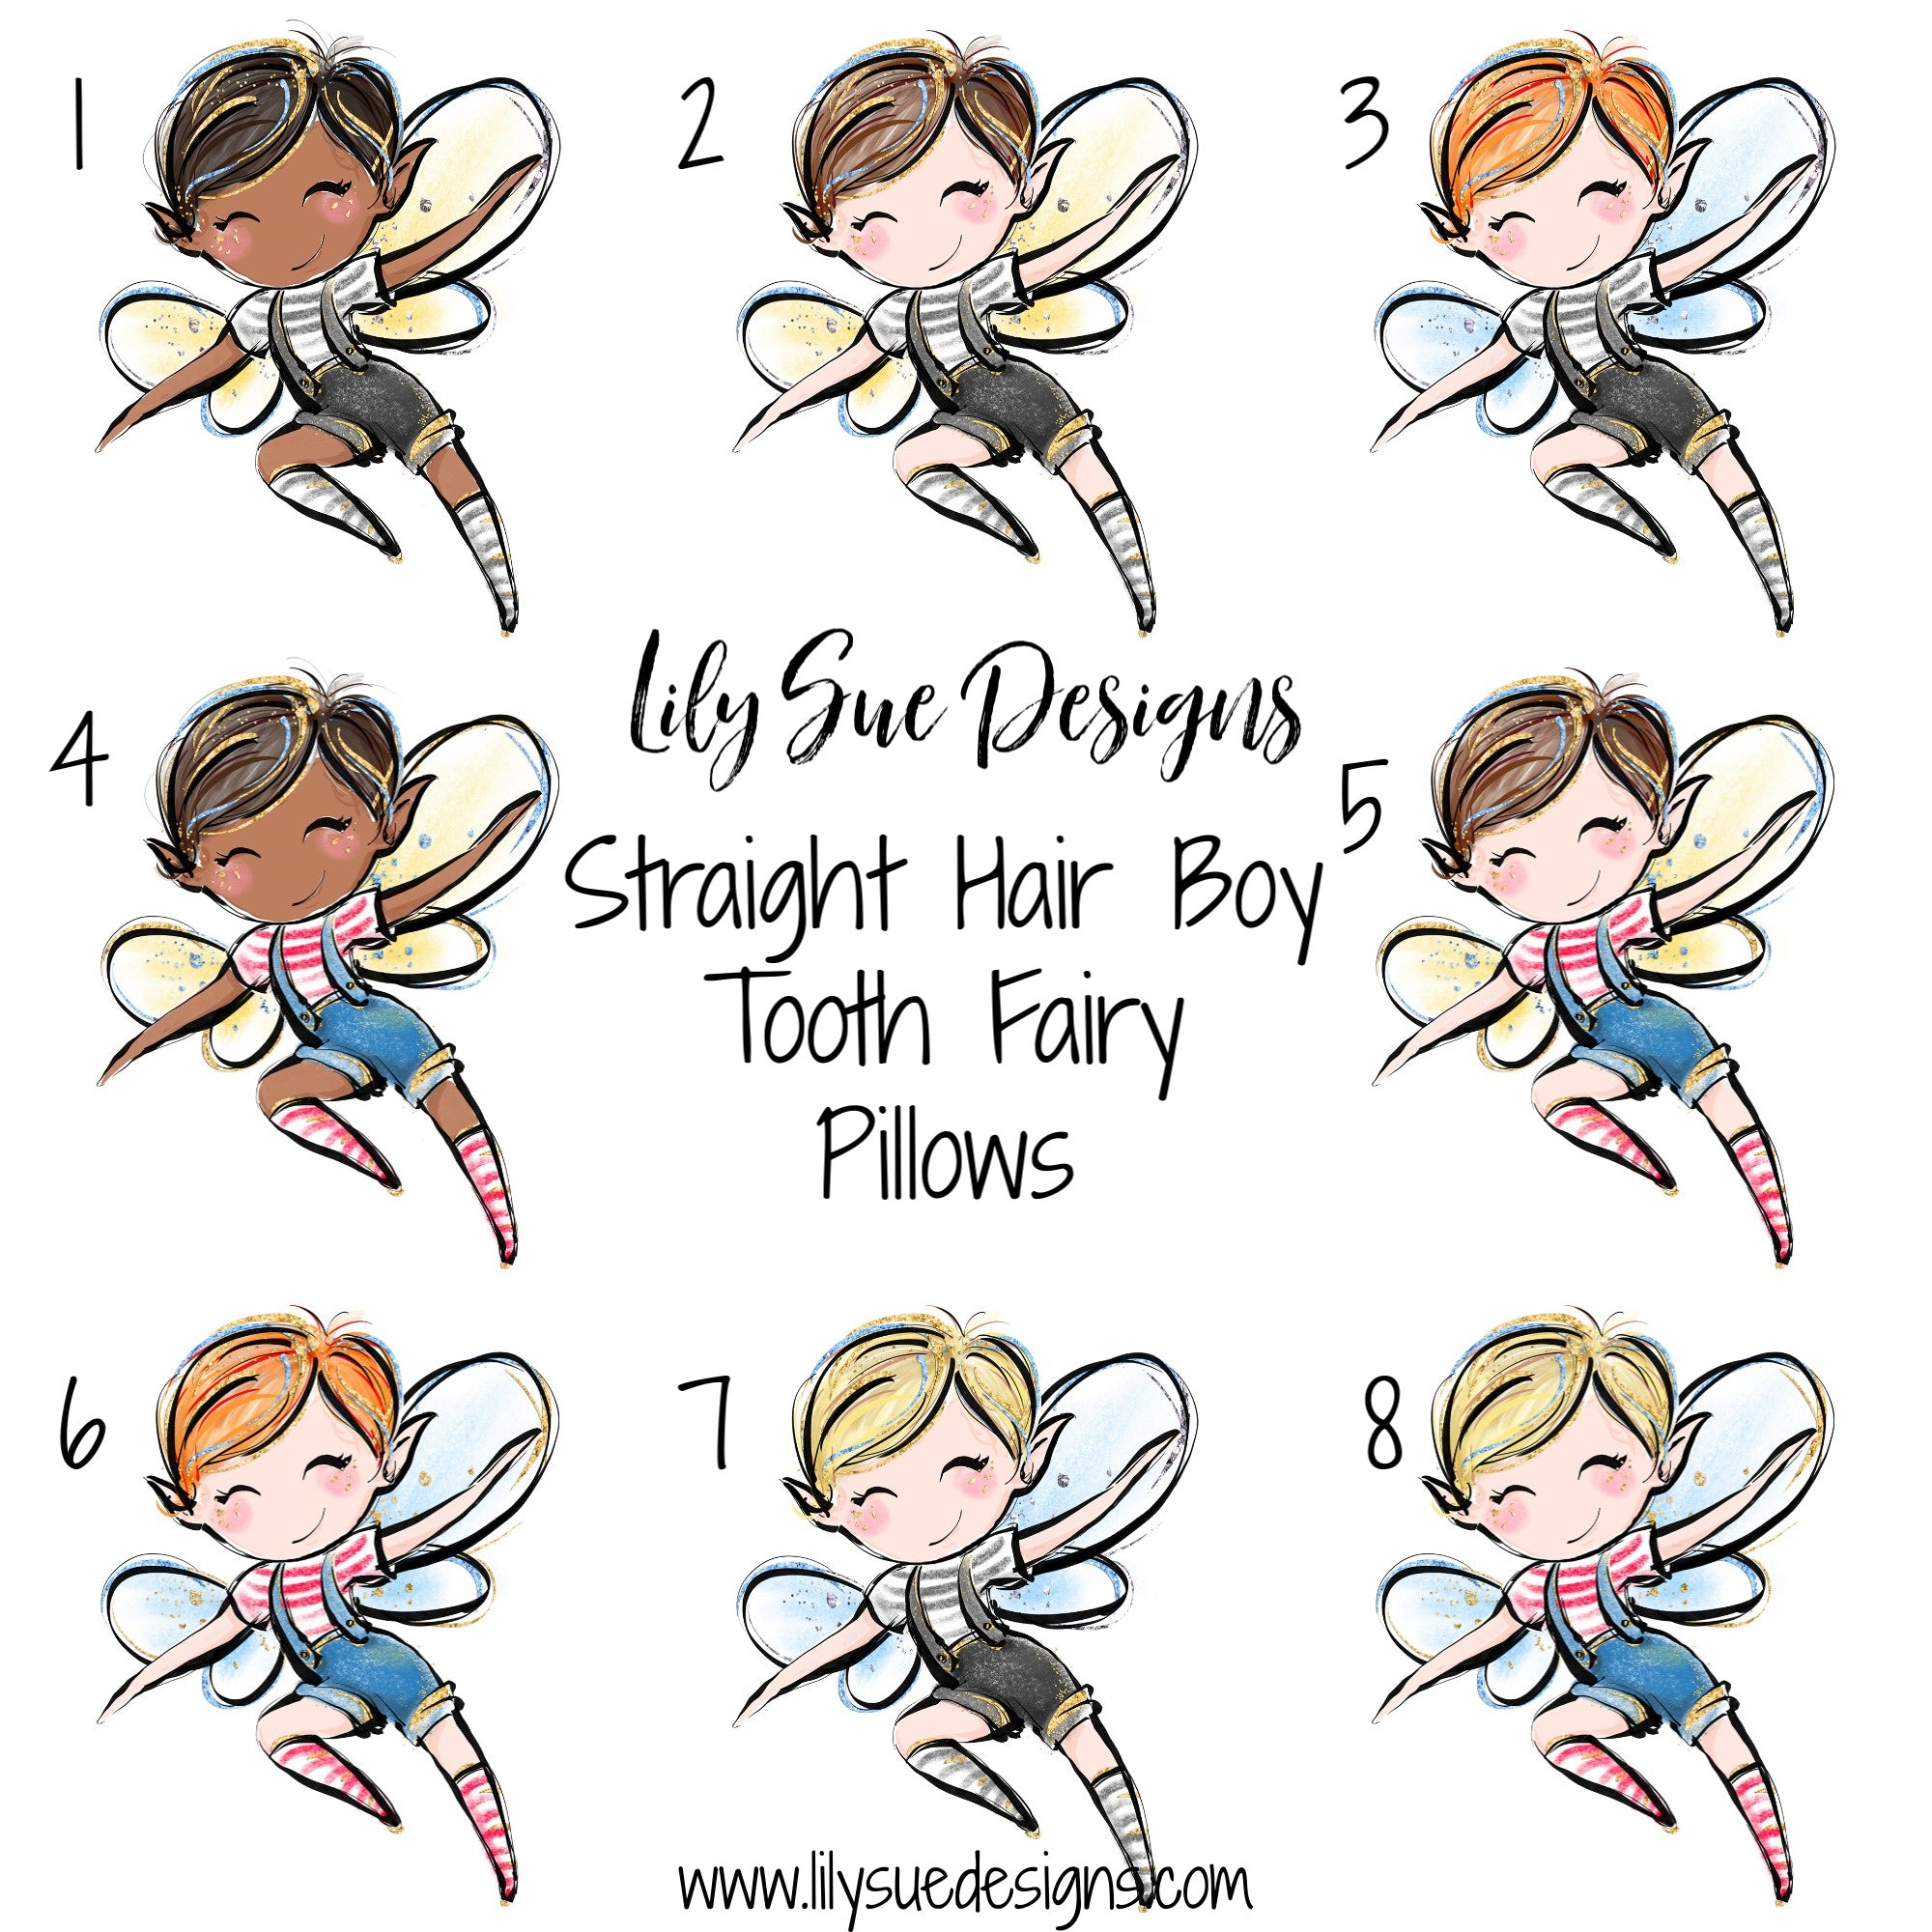 Straight hair Boy Tooth Fairy Pillow